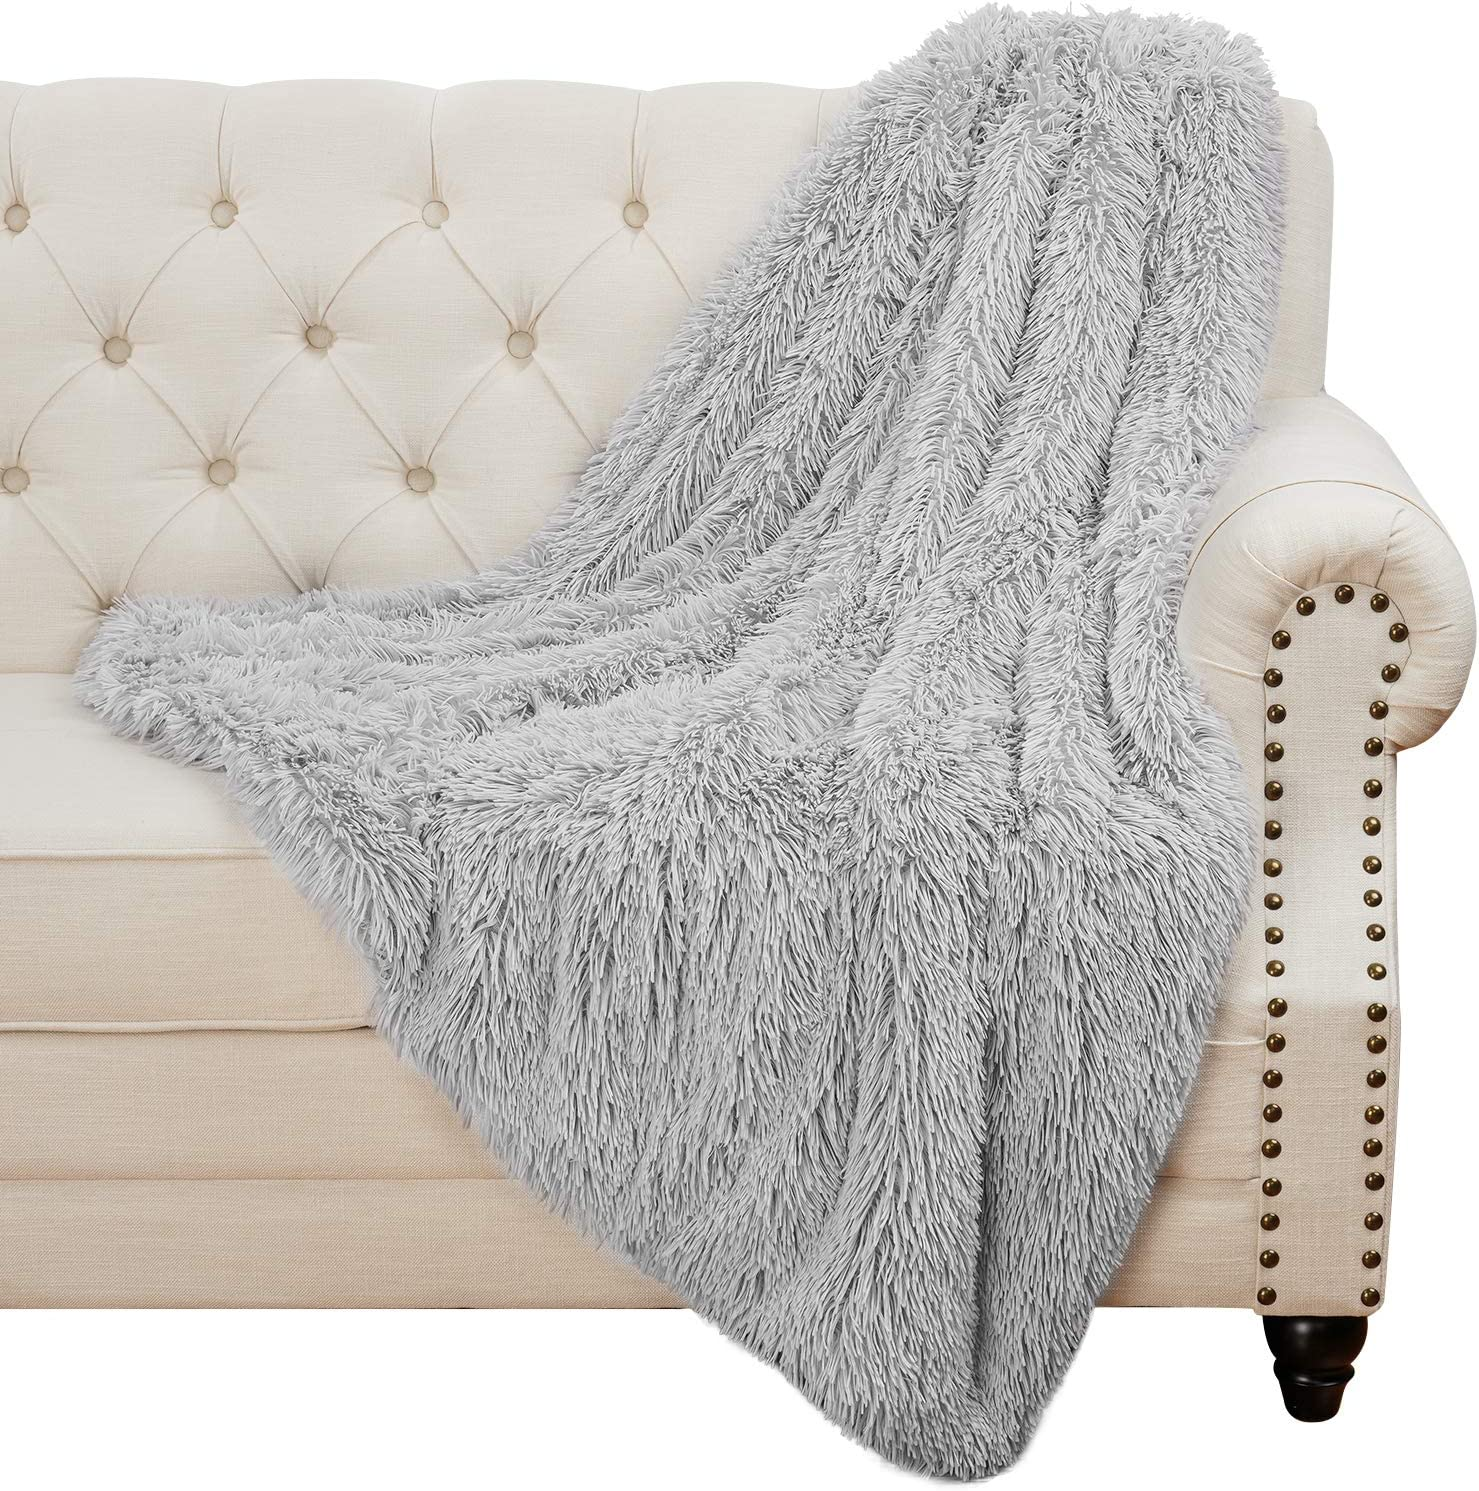 Homore Soft Fluffy Blanket Fuzzy Sherpa Plush Cozy Faux Fur Throw Blankets for Bed Couch Sofa Chair Decorative, 50''x60'' Light Grey: Kitchen & Dining